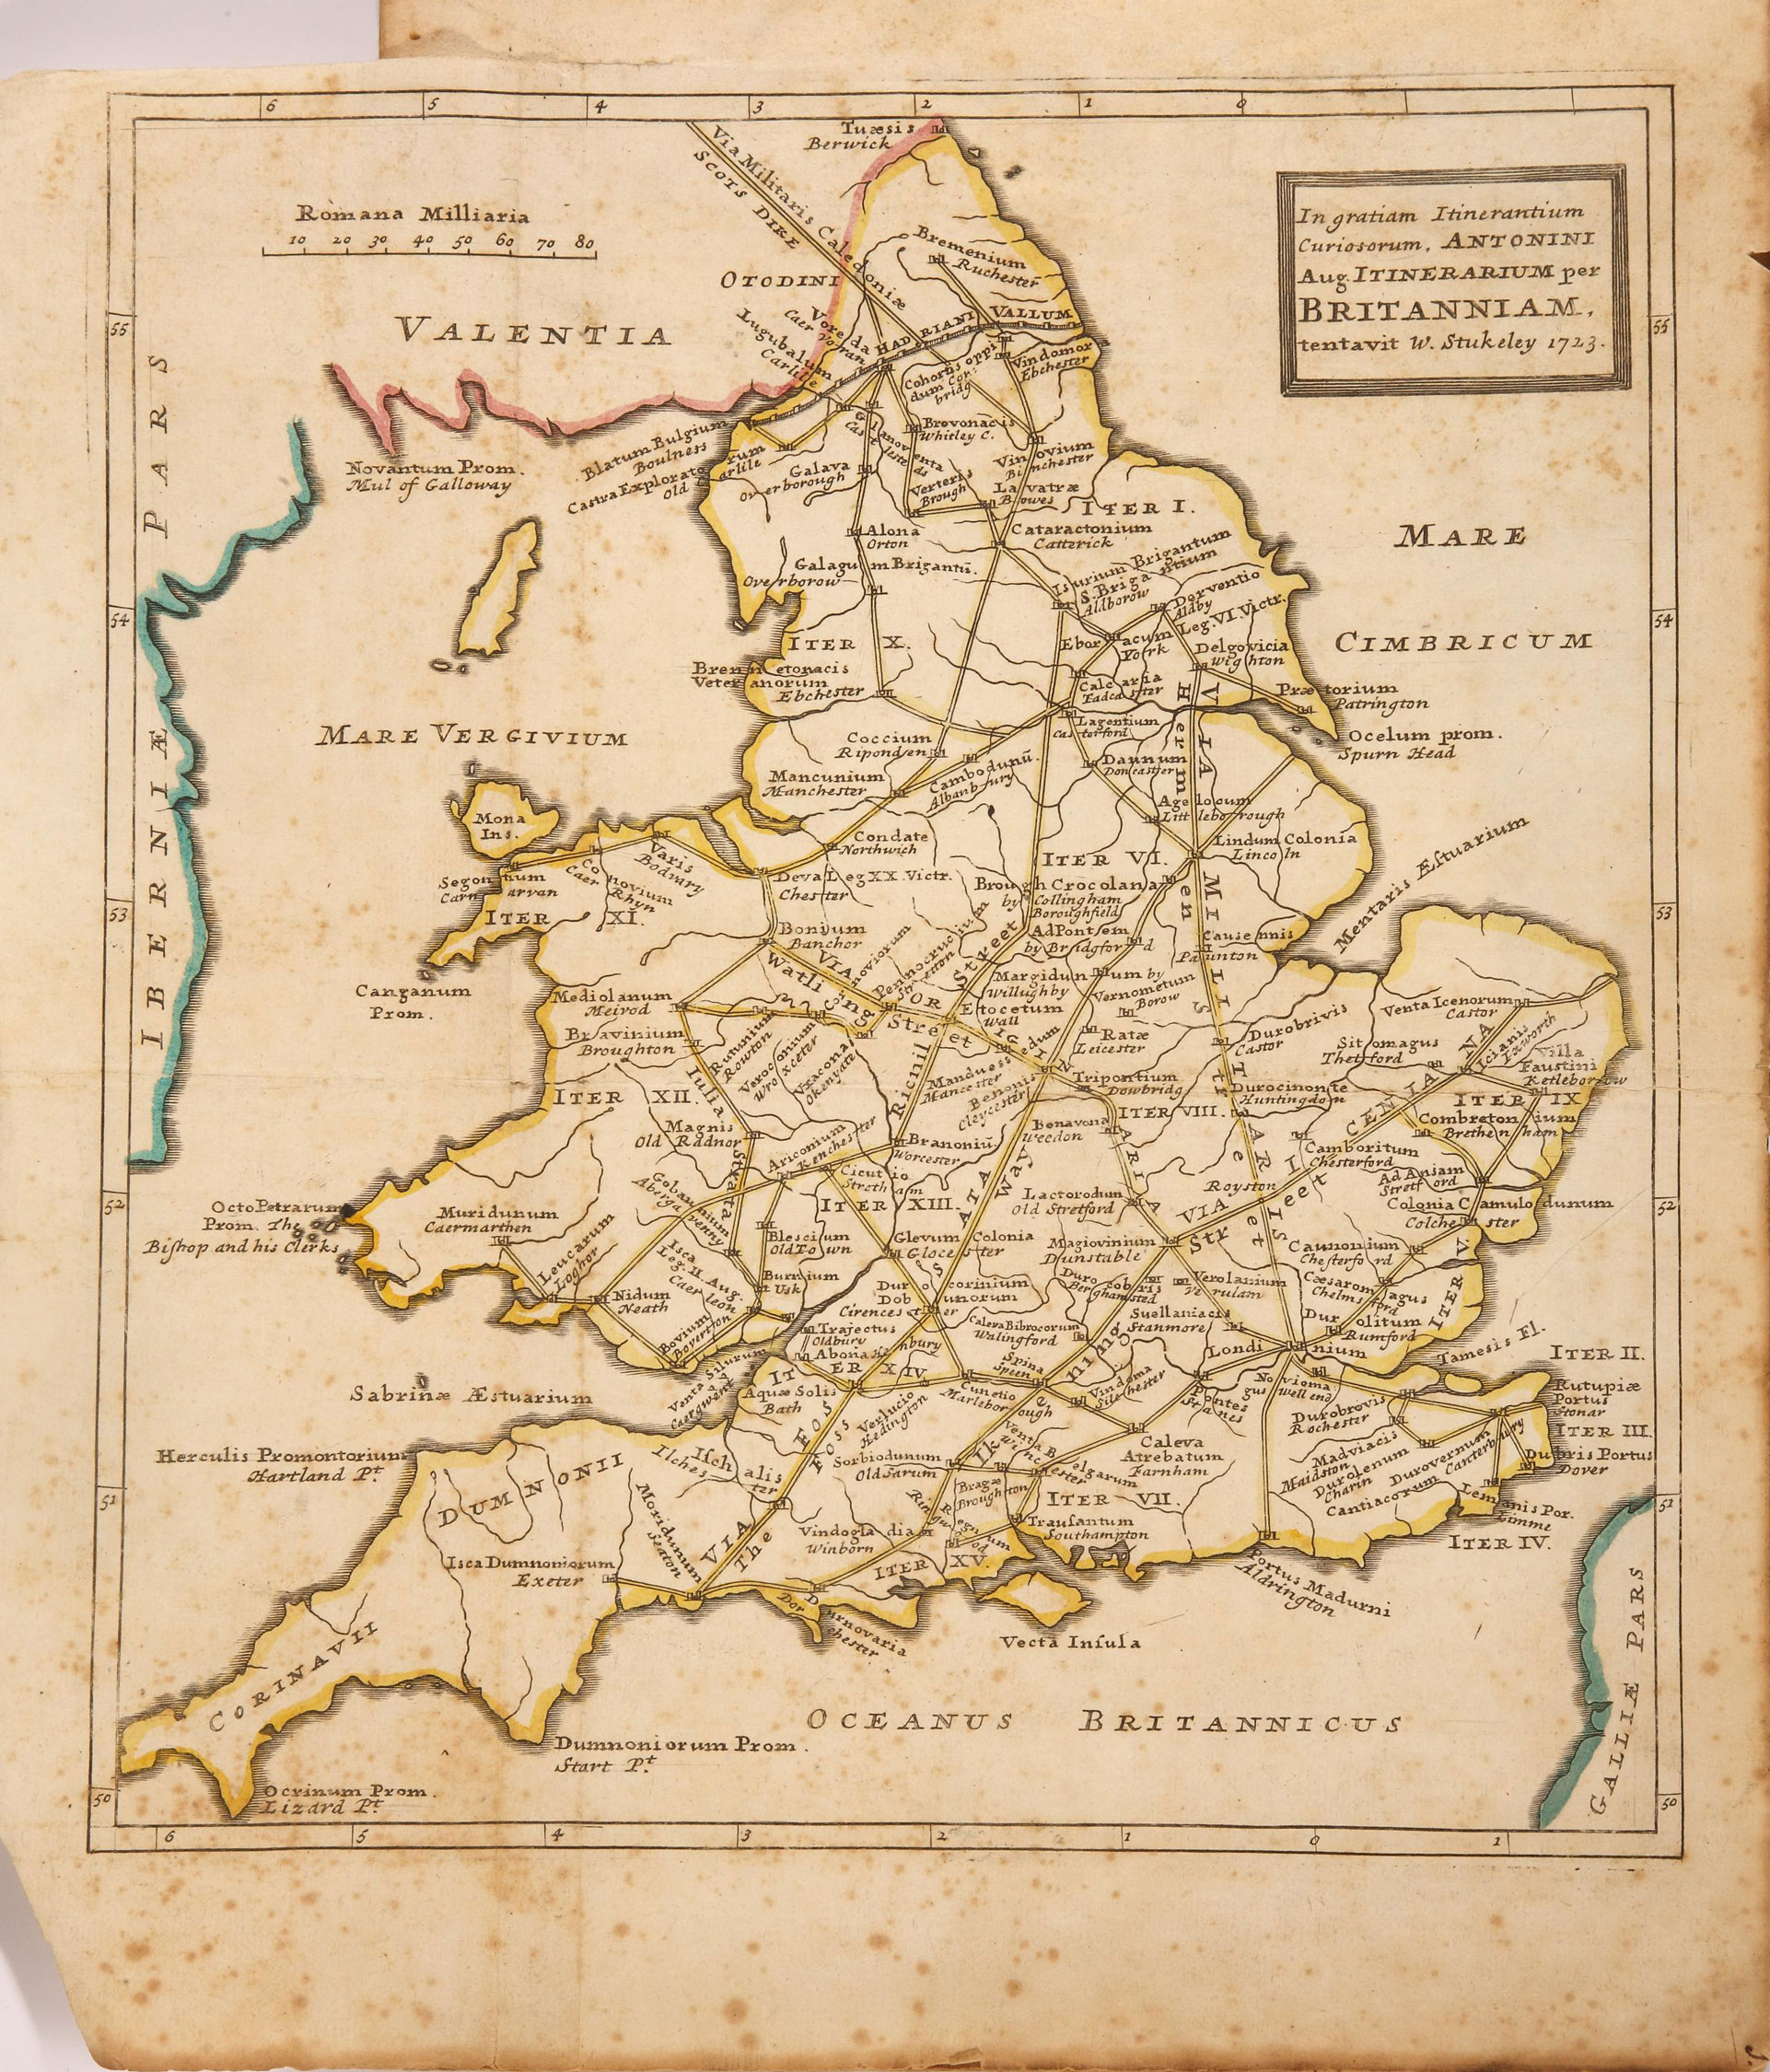 FO925/4174 Map of Britain 1733